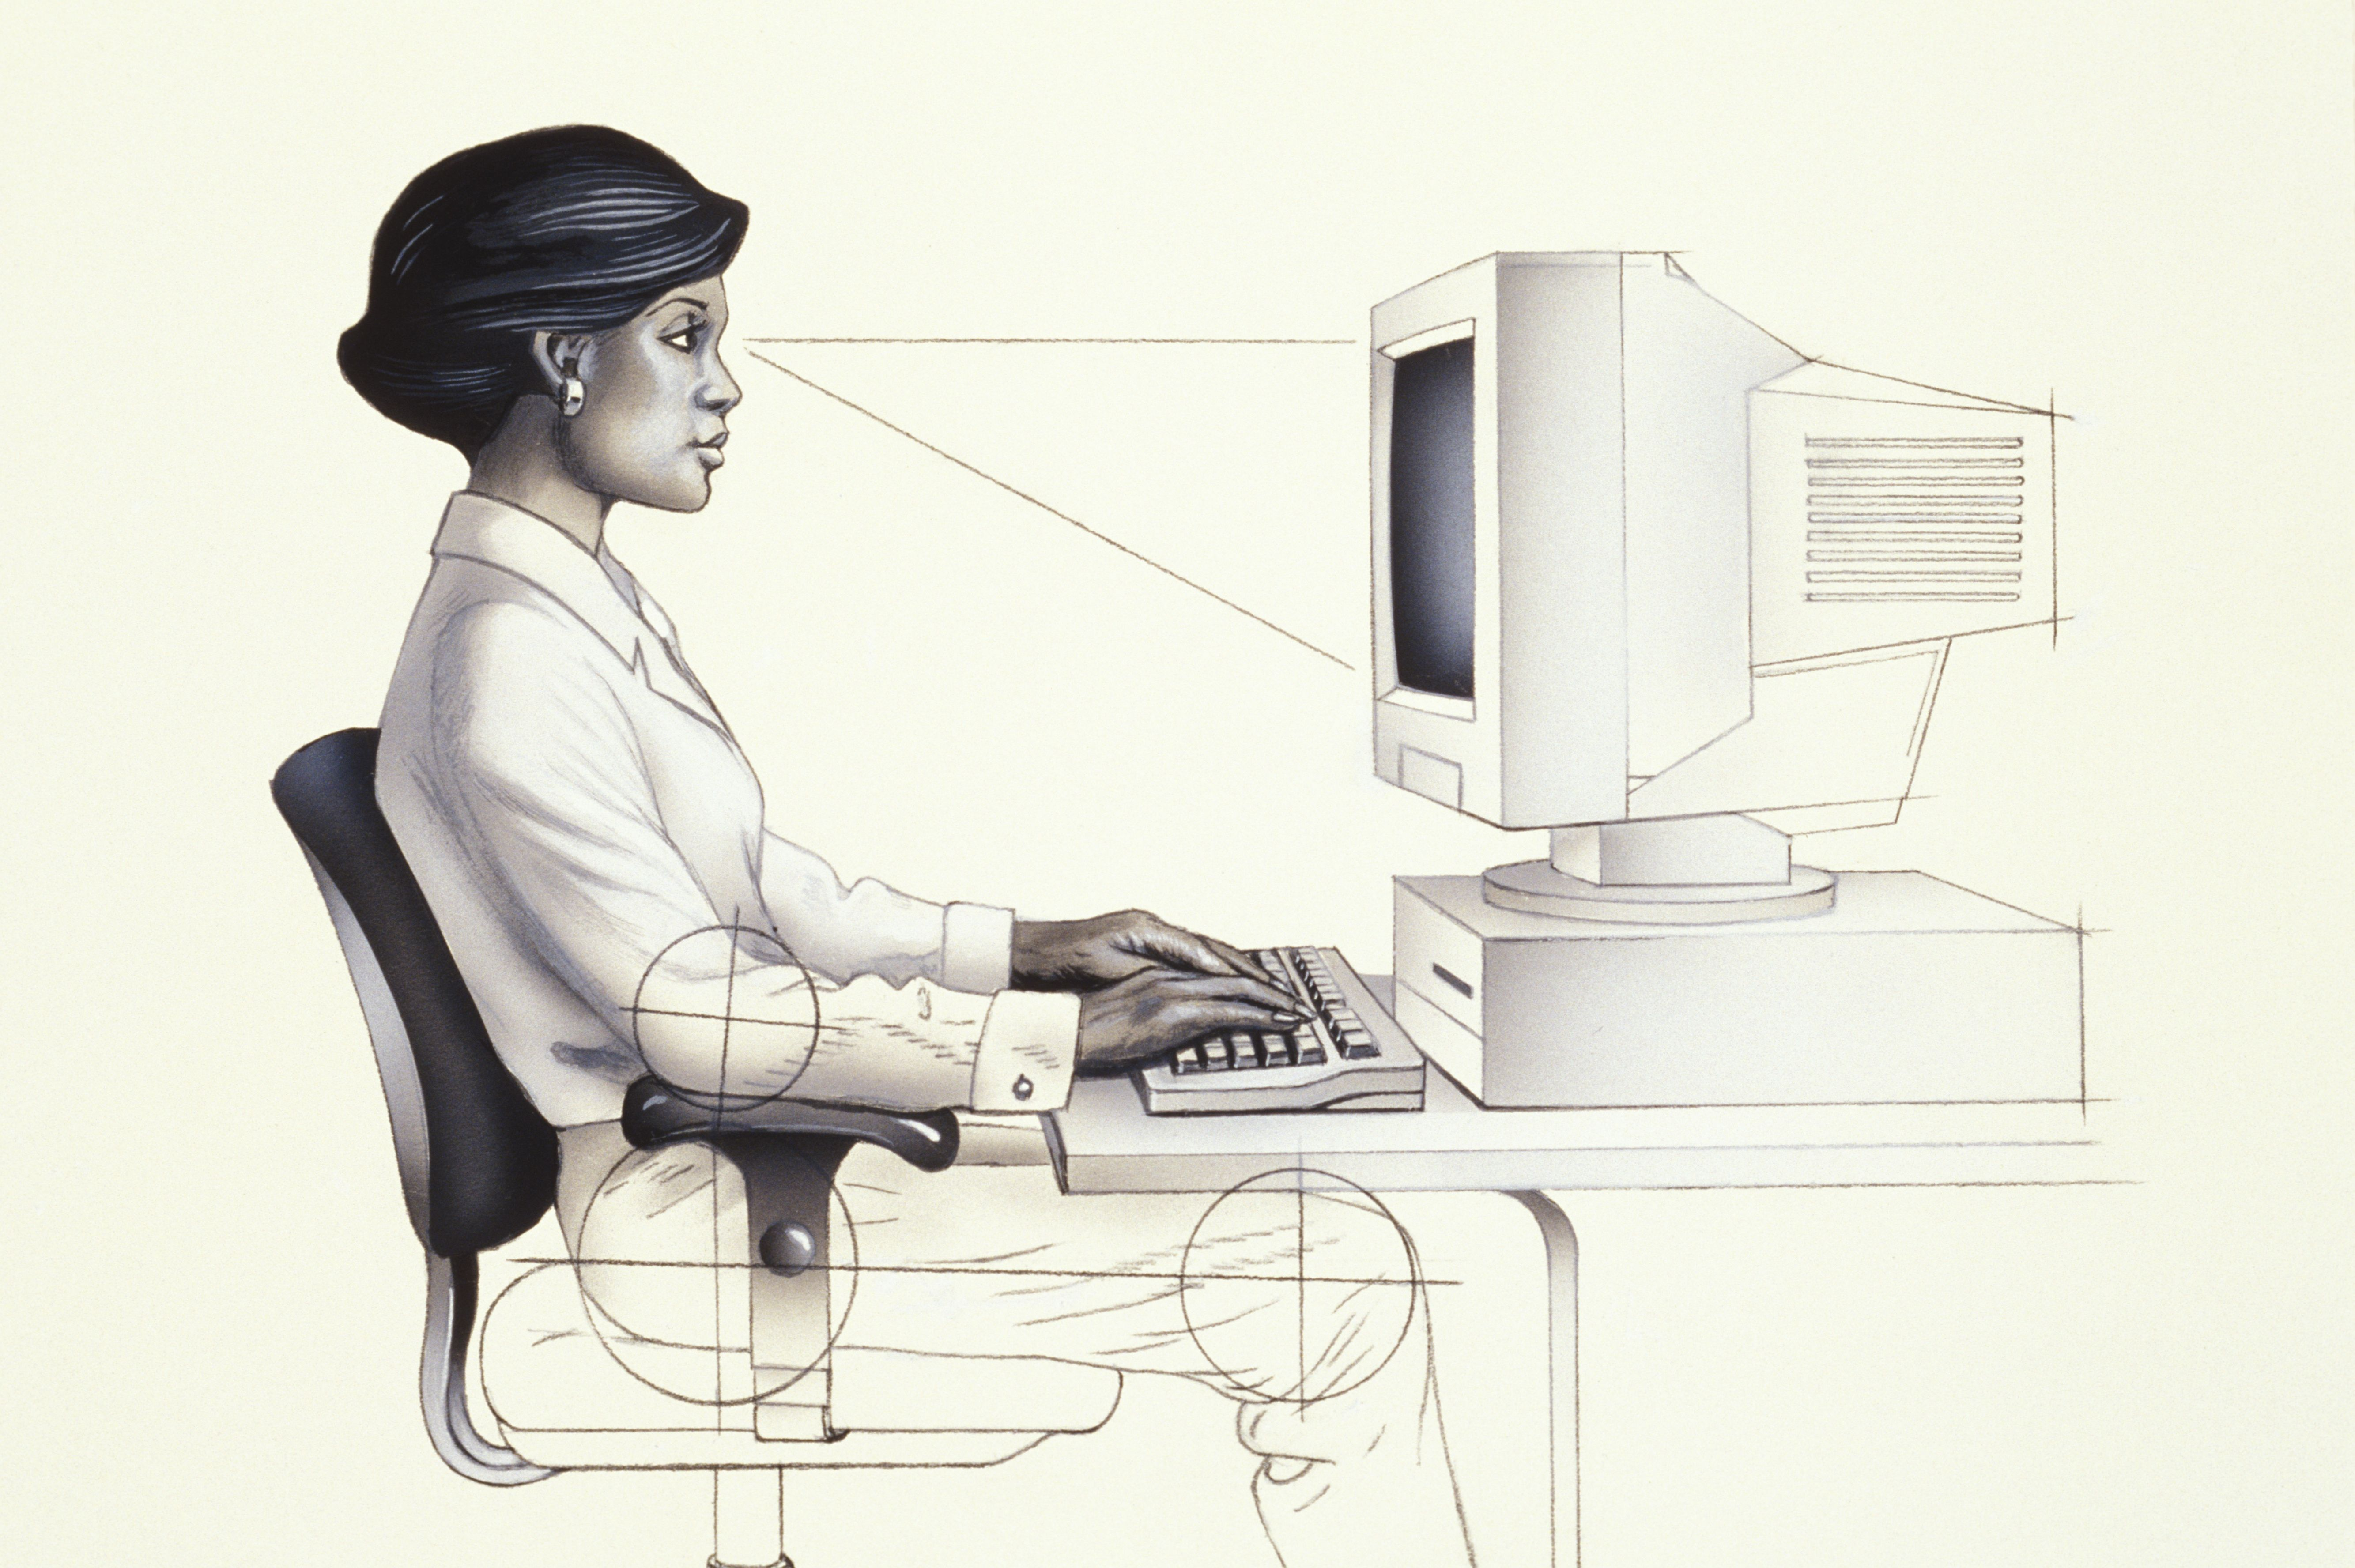 Desk Height And The Risks Of Neck Pain